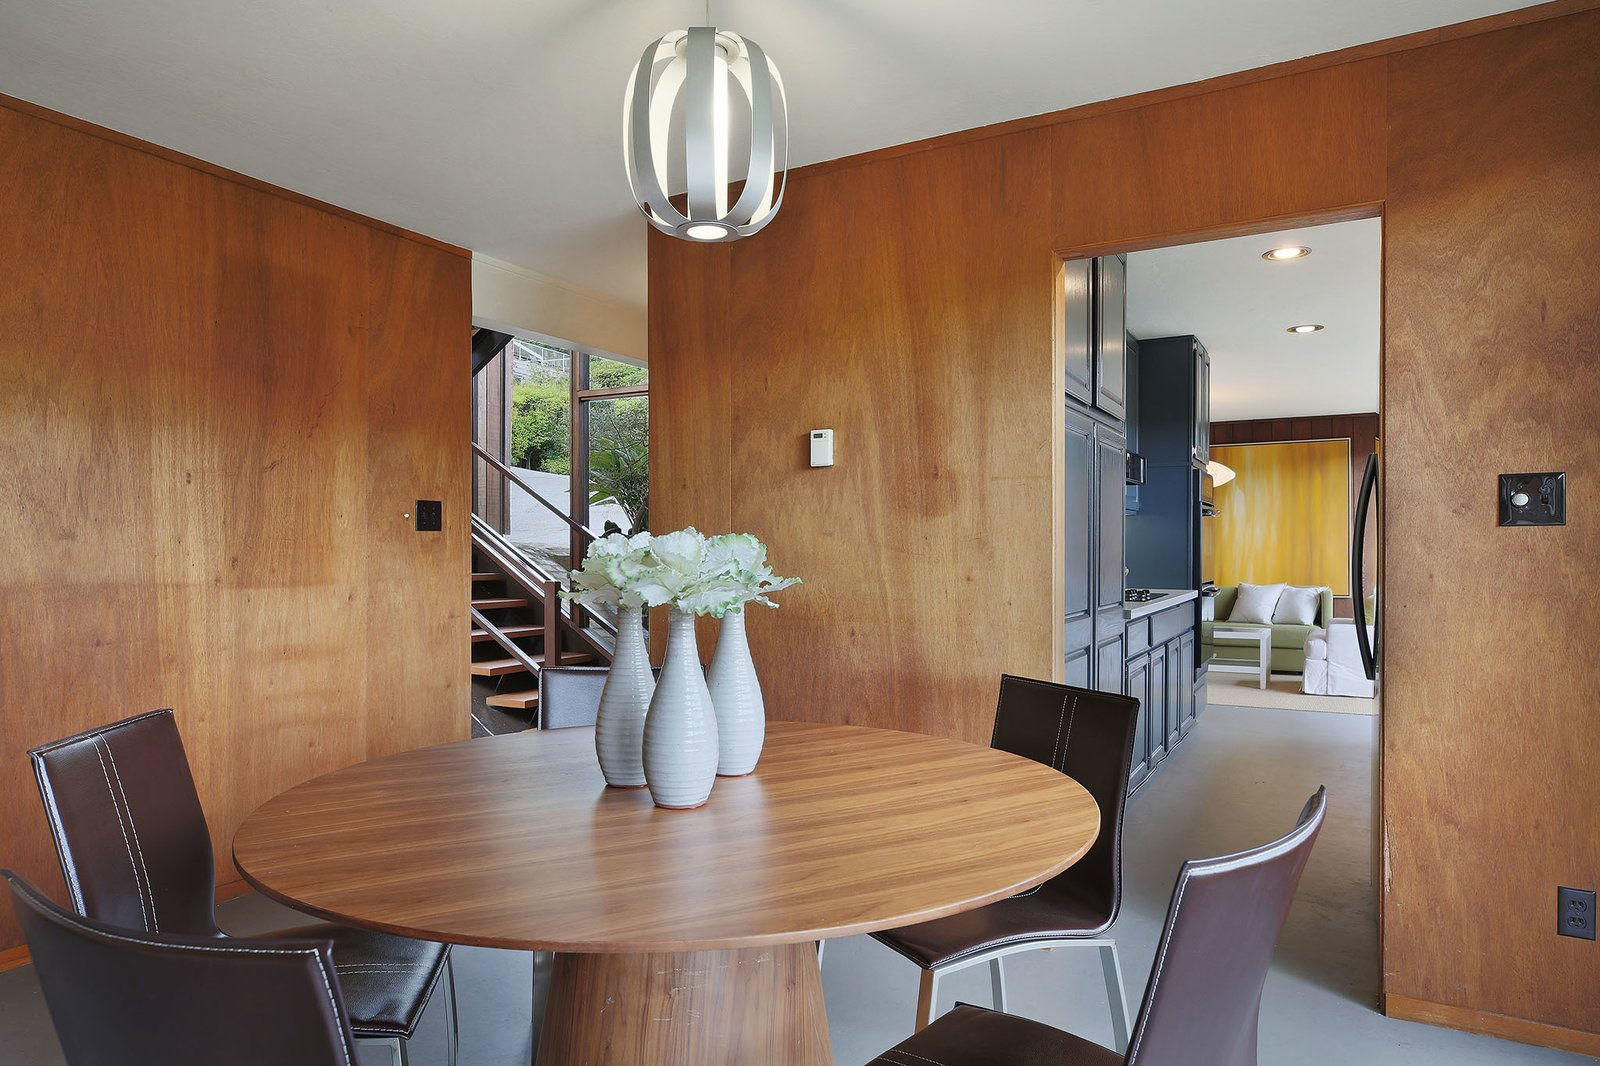 Photo 6 of 15 in This Rare Two-Story Eichler Has Just Been Listed ...